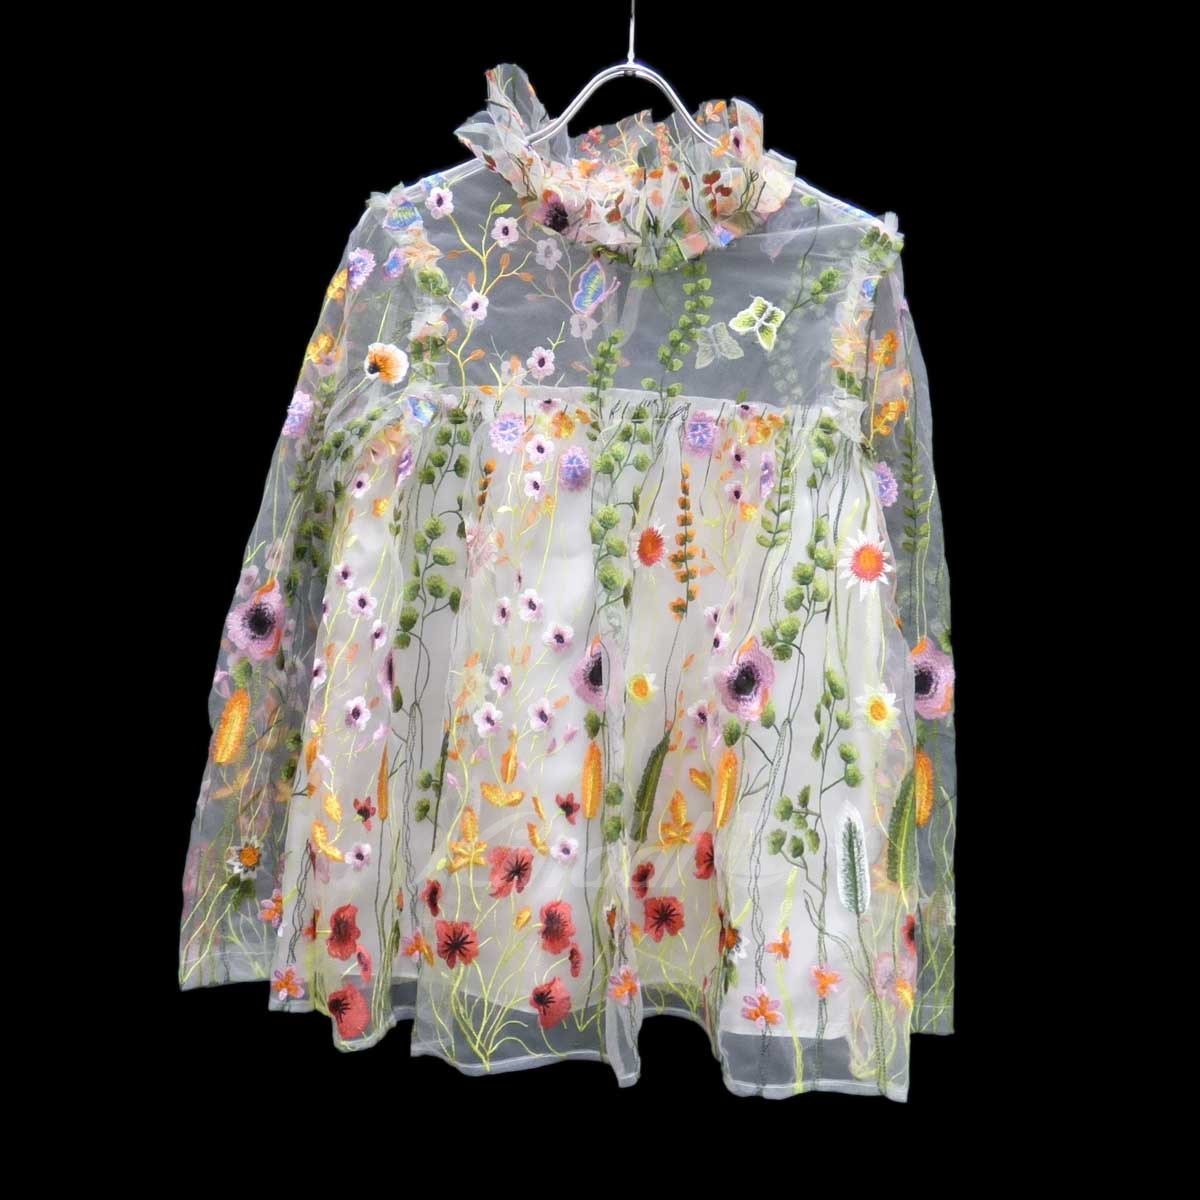 Sister Jane see-through floral design blouse multicolored size: S (sister  Jane)